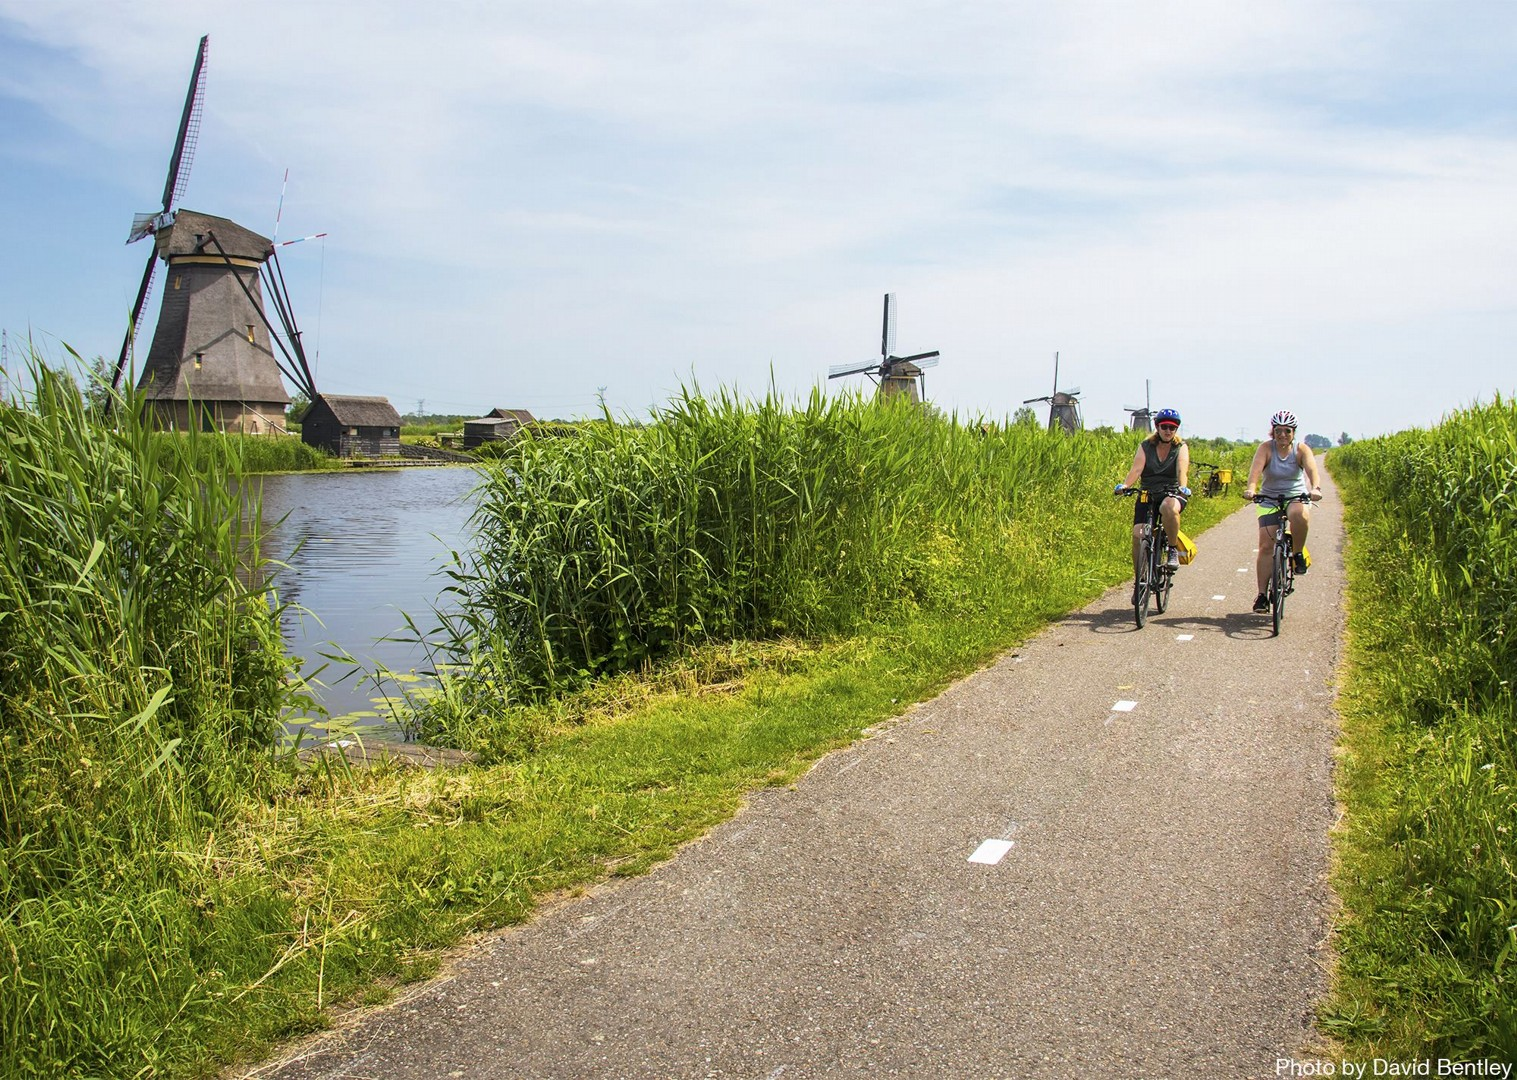 open-adventure-ride-with-beautiful-scenes-in-holland.jpg - NEW! Holland - Dutch Discoverer - Canals and Castles - Family Cycling